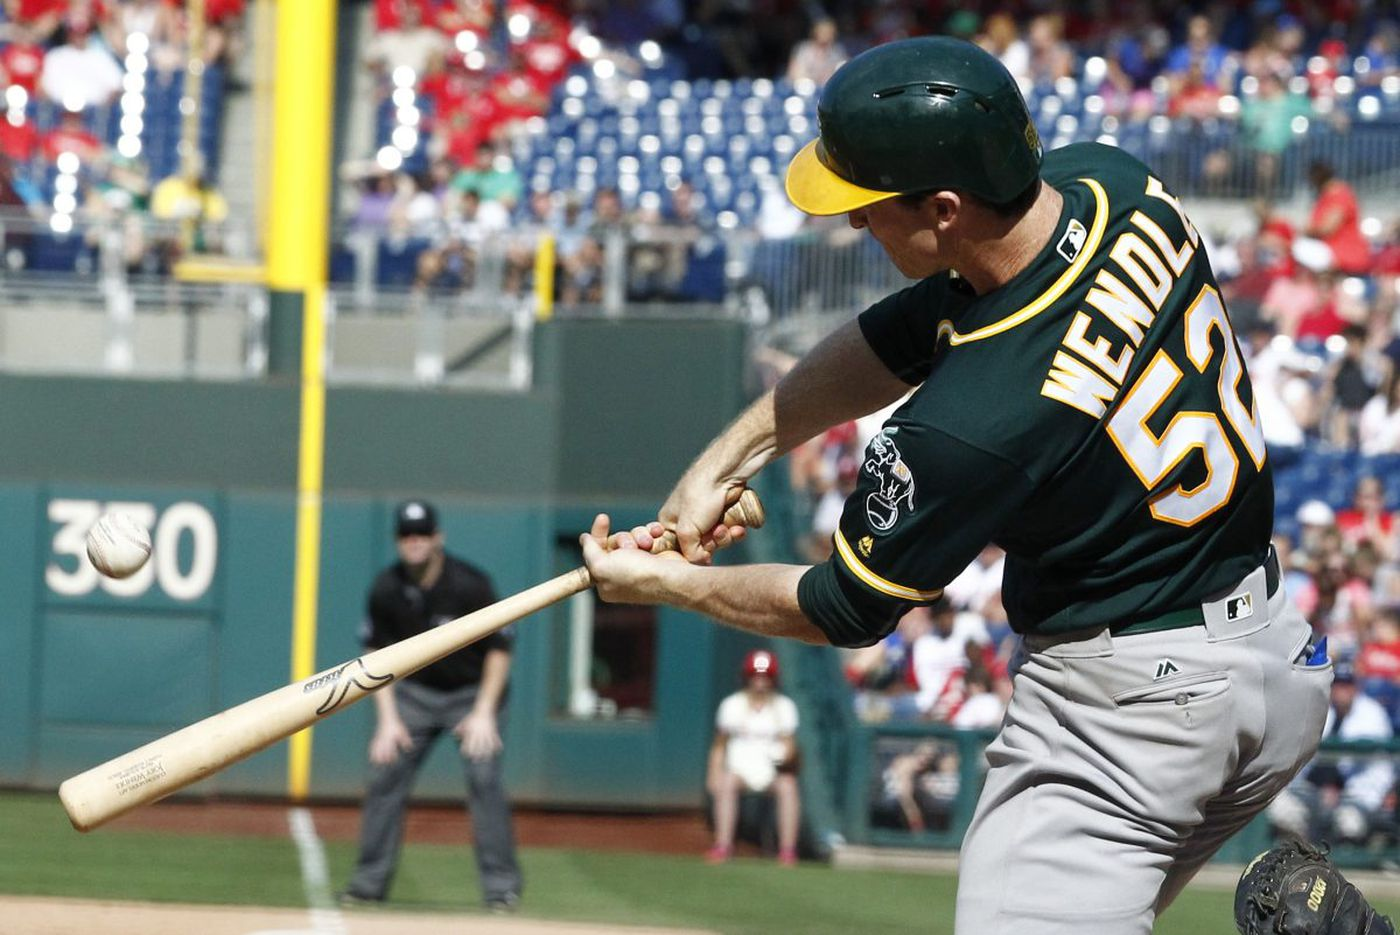 Chester County's Joey Wendle hits grand slam as A's beat Phillies